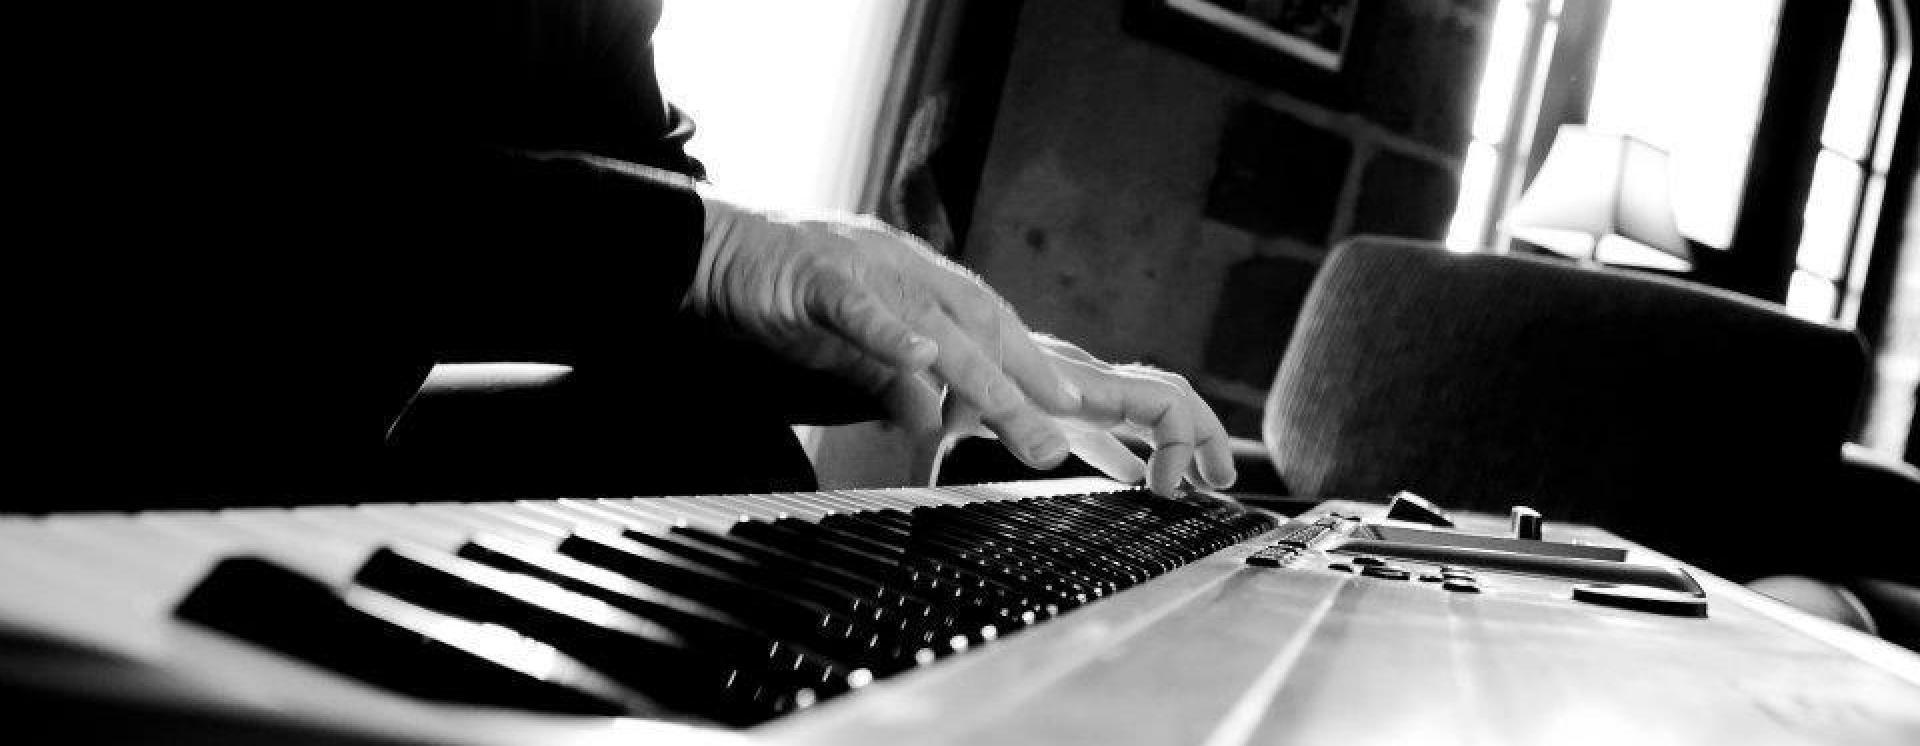 1448333560 charles on keys copy